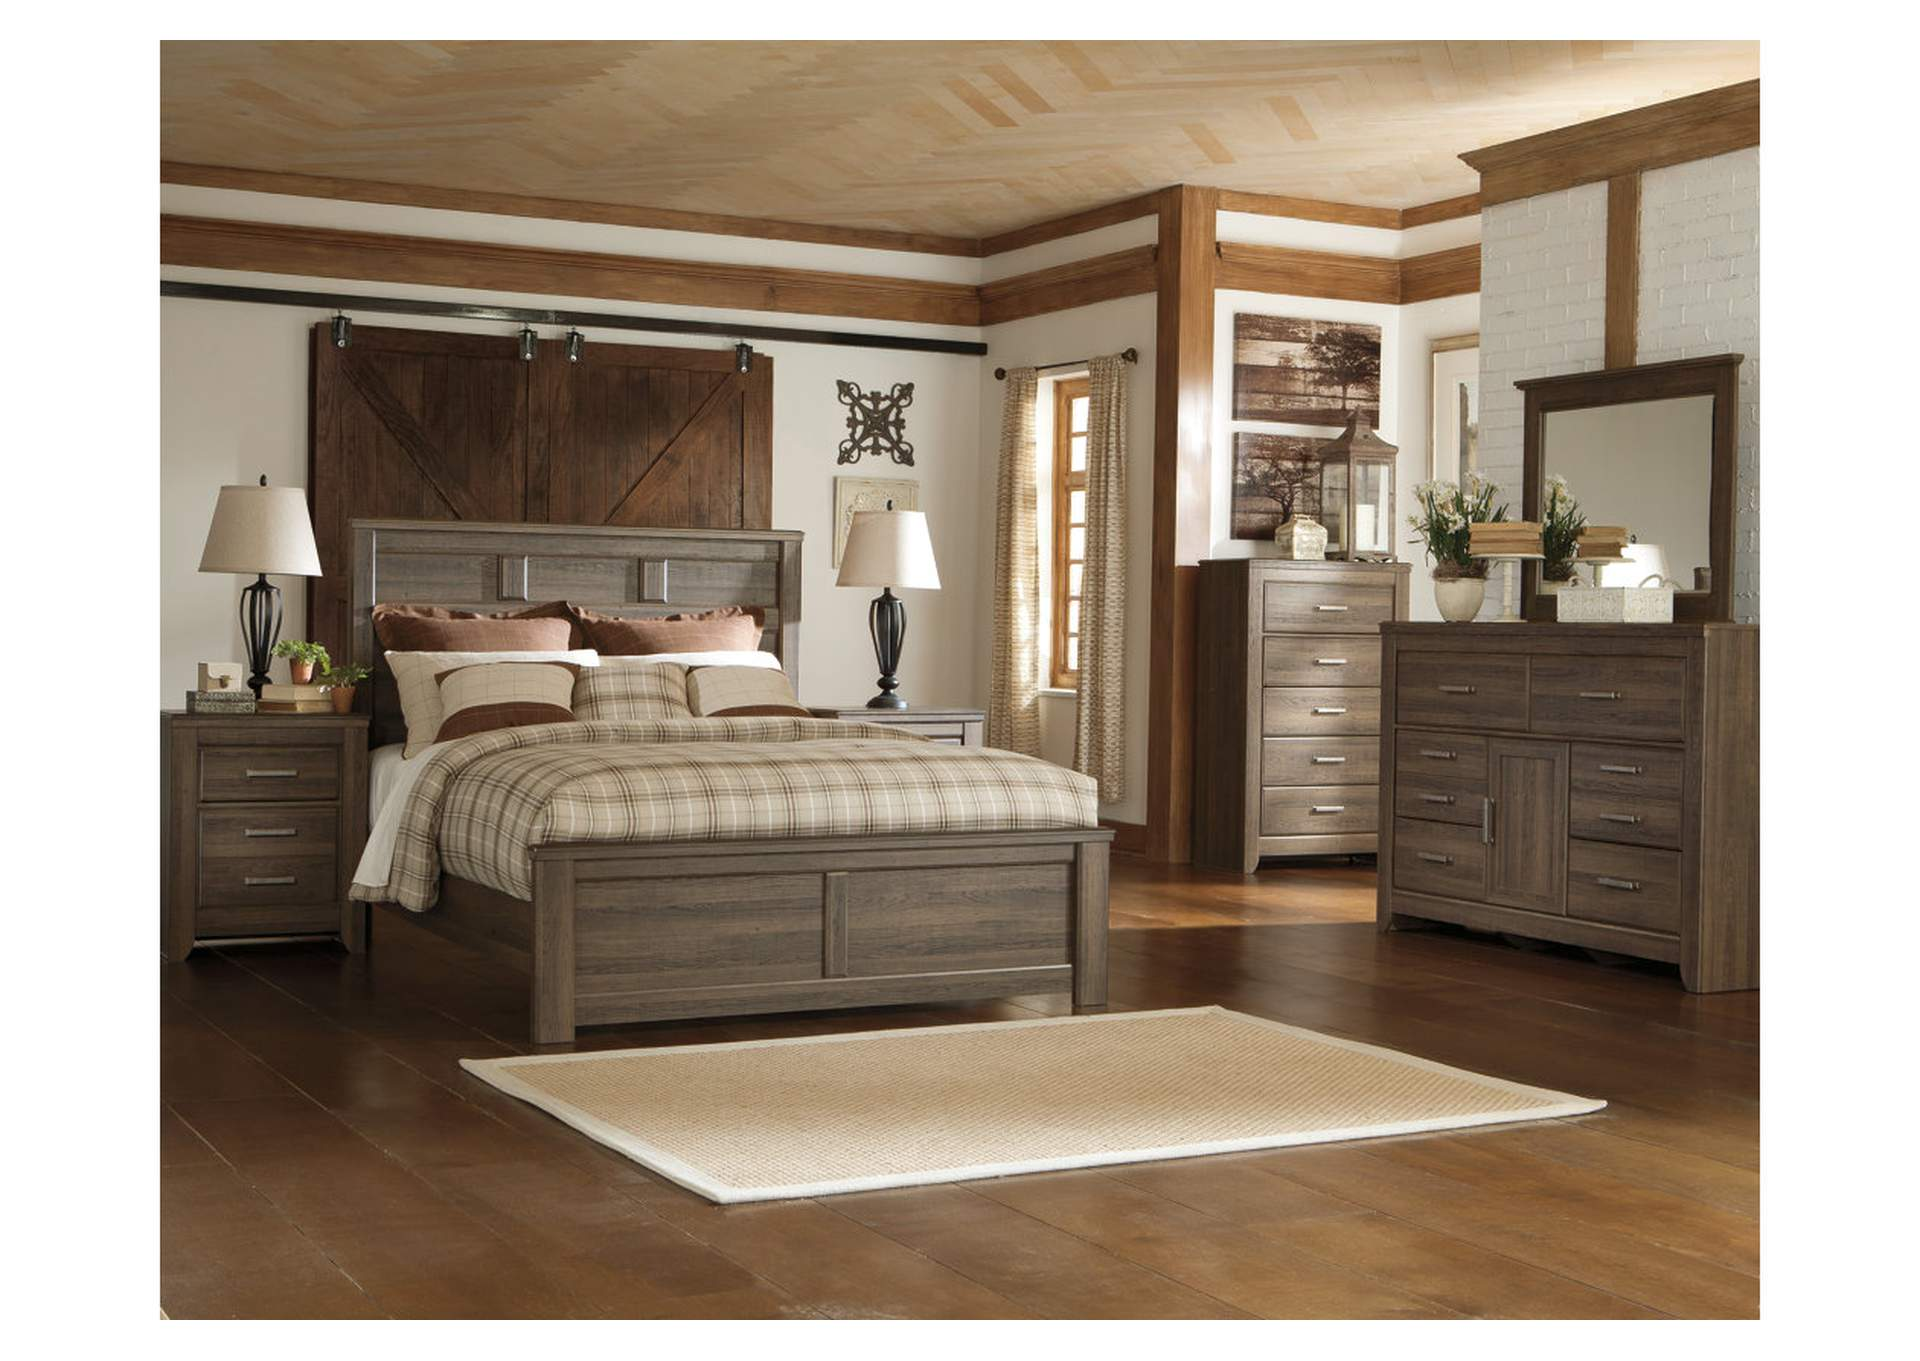 Juararo King Panel Bed w/Dresser, Mirror & Drawer Chest,Signature Design By Ashley